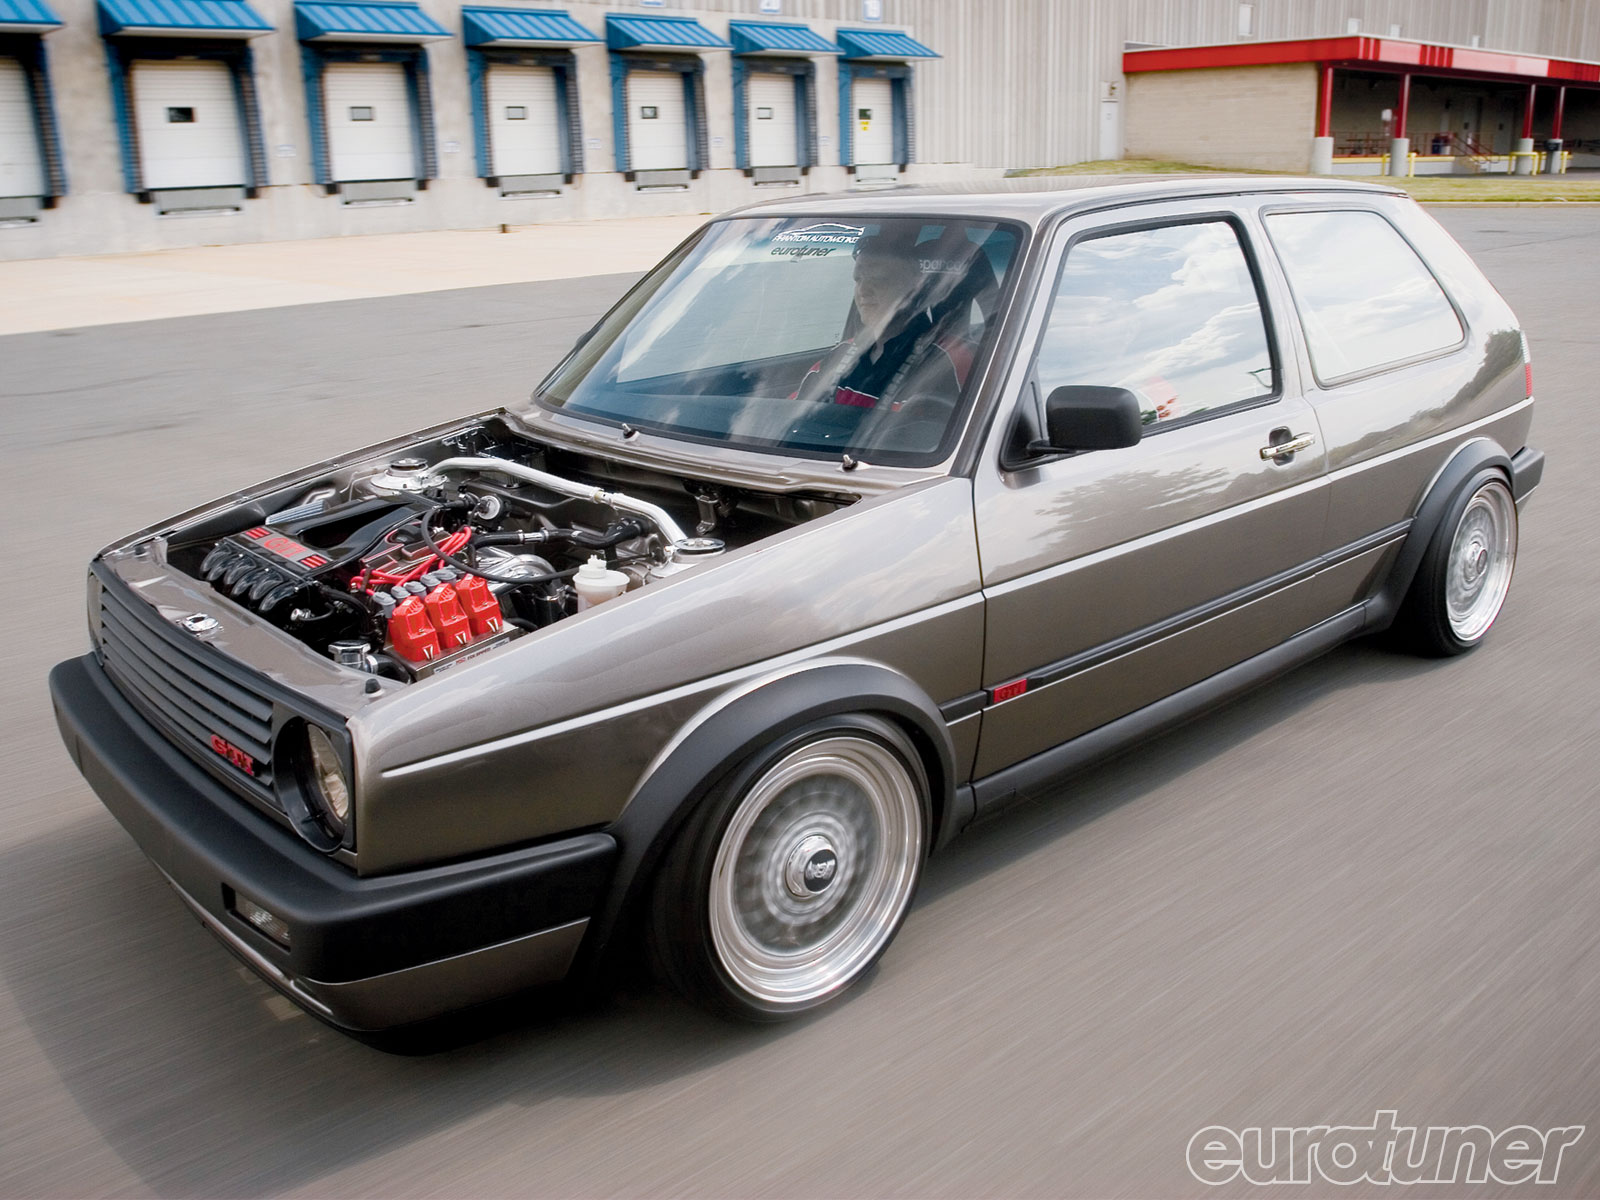 1991 Volkswagen Gti Information And Photos Zombiedrive Golf R Fuse Diagram 9